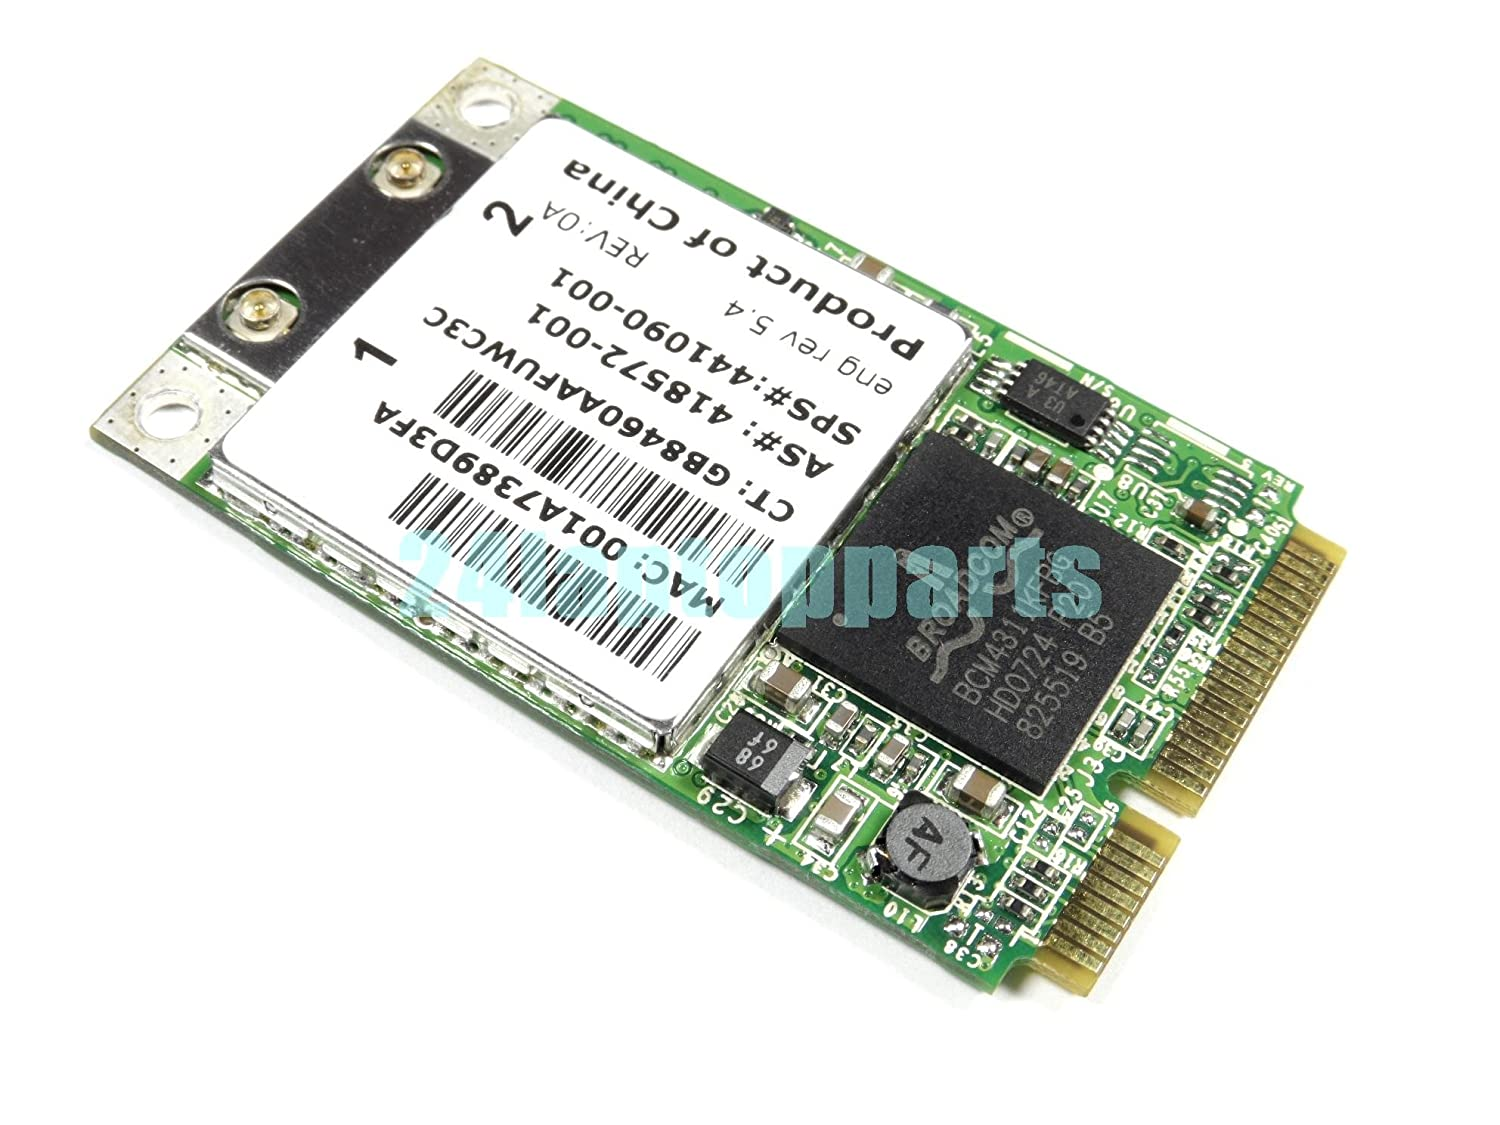 broadcom netxtreme bcm5750f fast ethernet controller